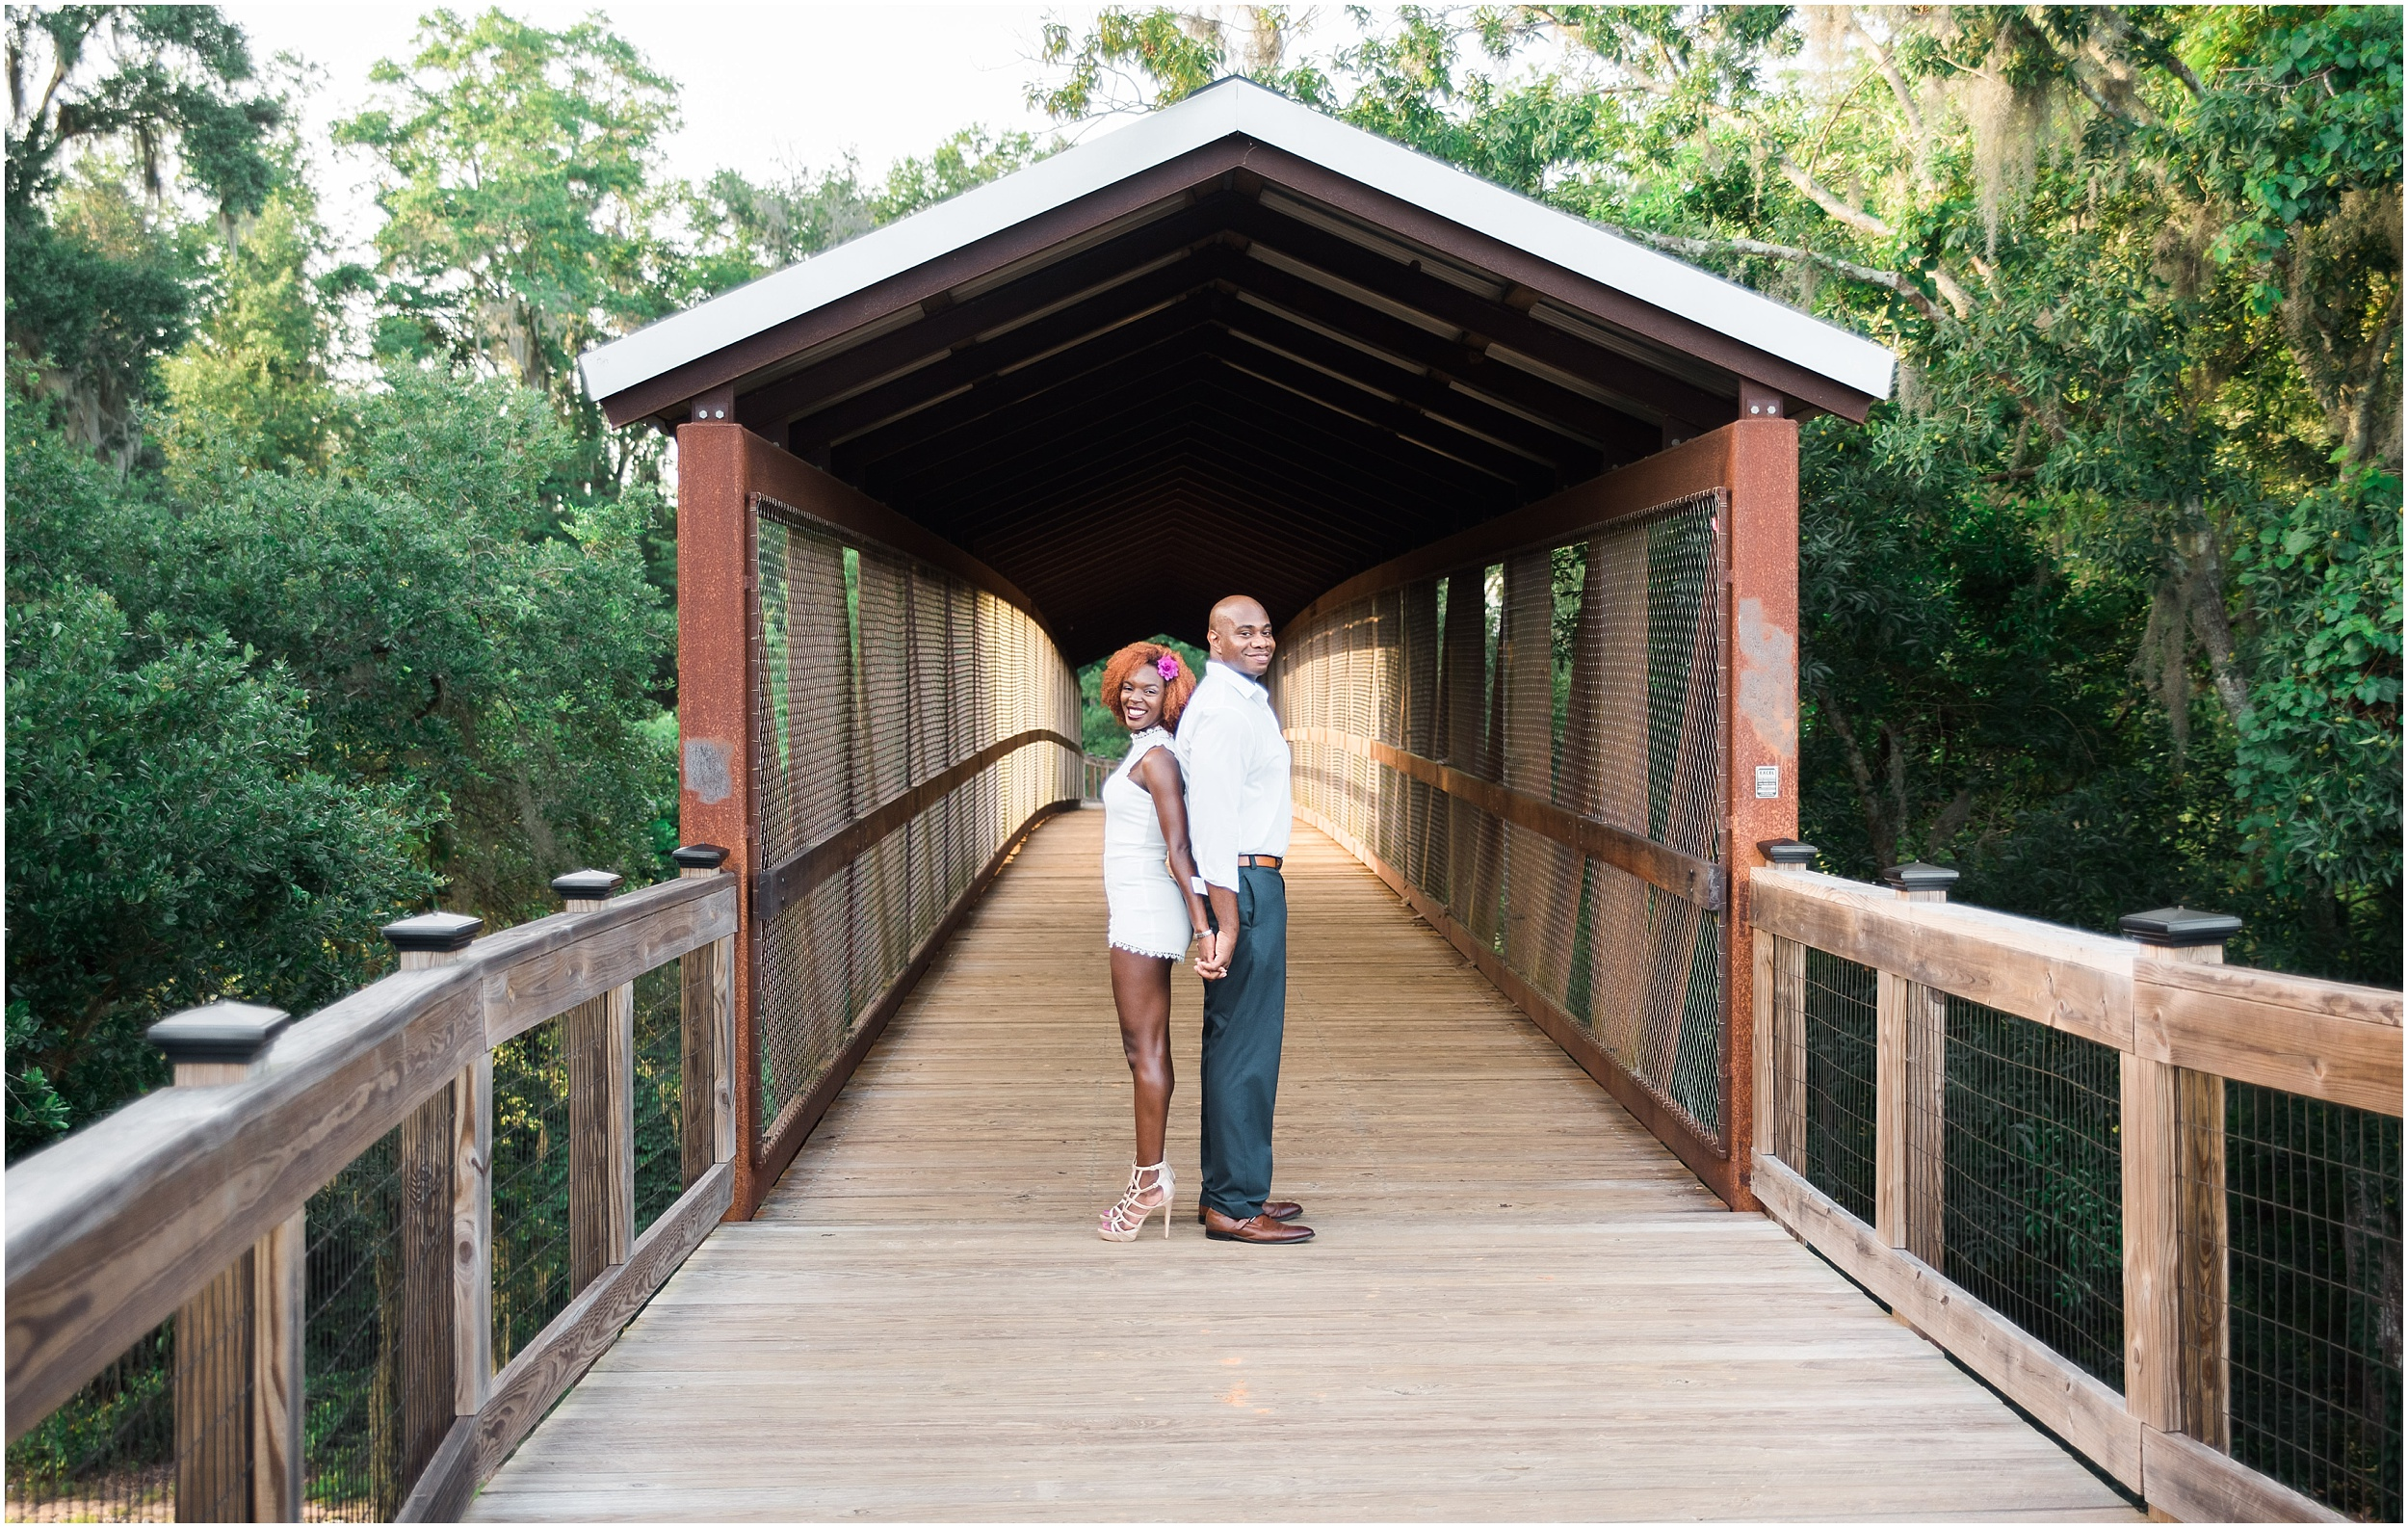 Kacy & Rolanda Vow Renewal at J.R Alford Greenway, Tallahassee FL_0007.jpg